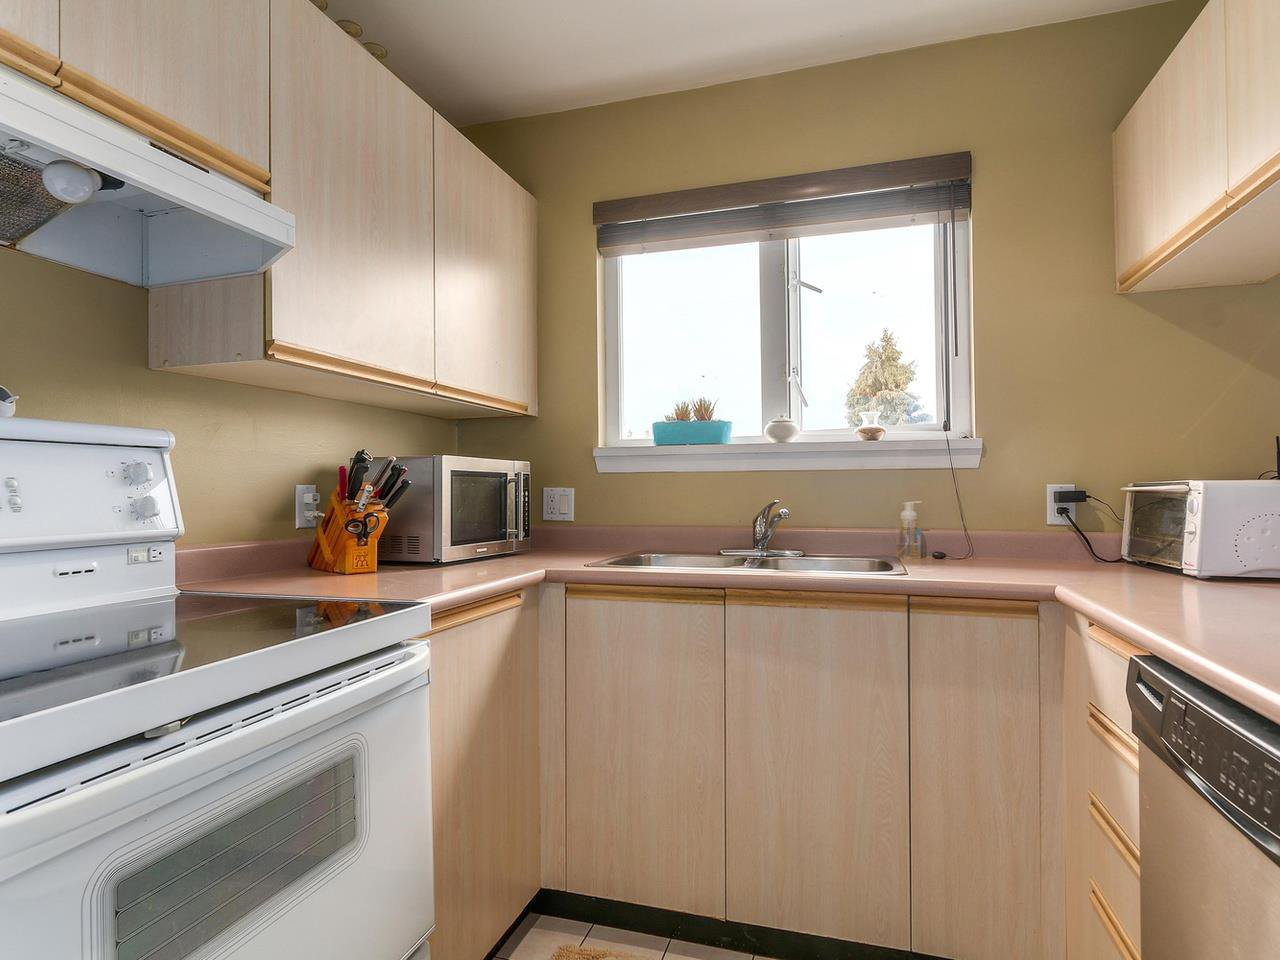 """Photo 11: Photos: 301 1623 E 2ND Avenue in Vancouver: Grandview VE Condo for sale in """"GRANDVIEW MANOR"""" (Vancouver East)  : MLS®# R2122830"""